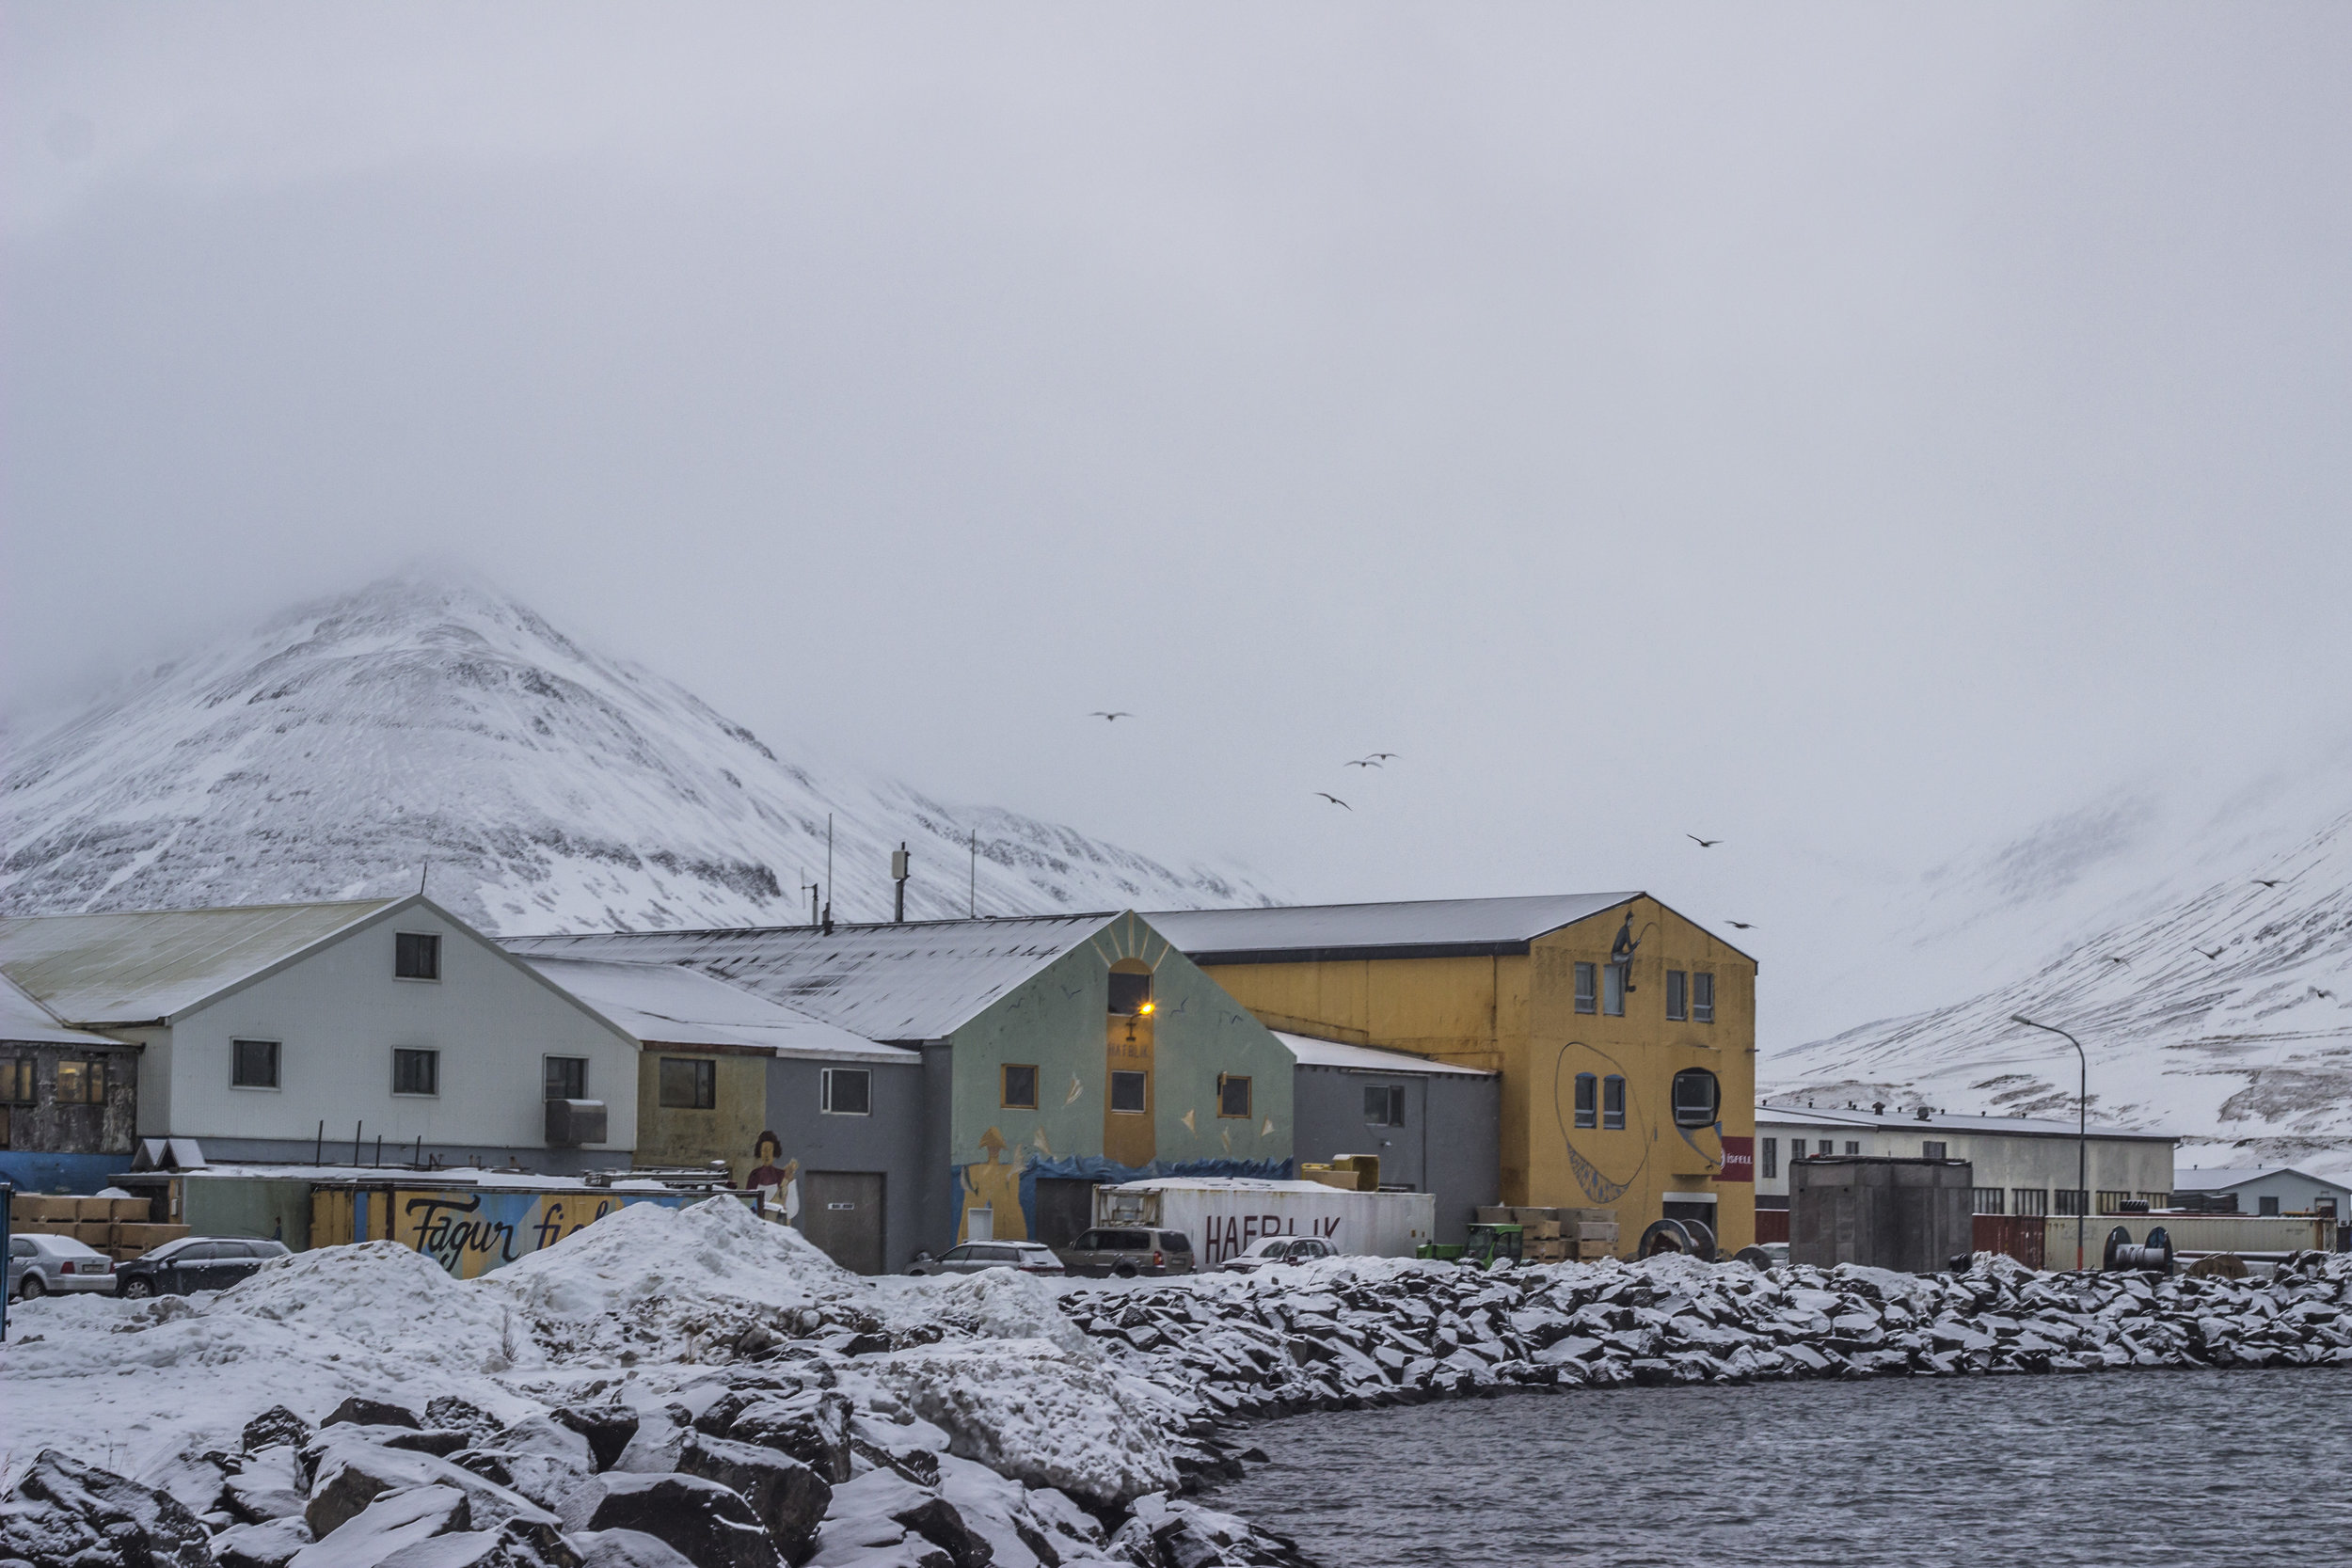 Ólafsfjörður's harbor is decorated with murals from years of artists passing through